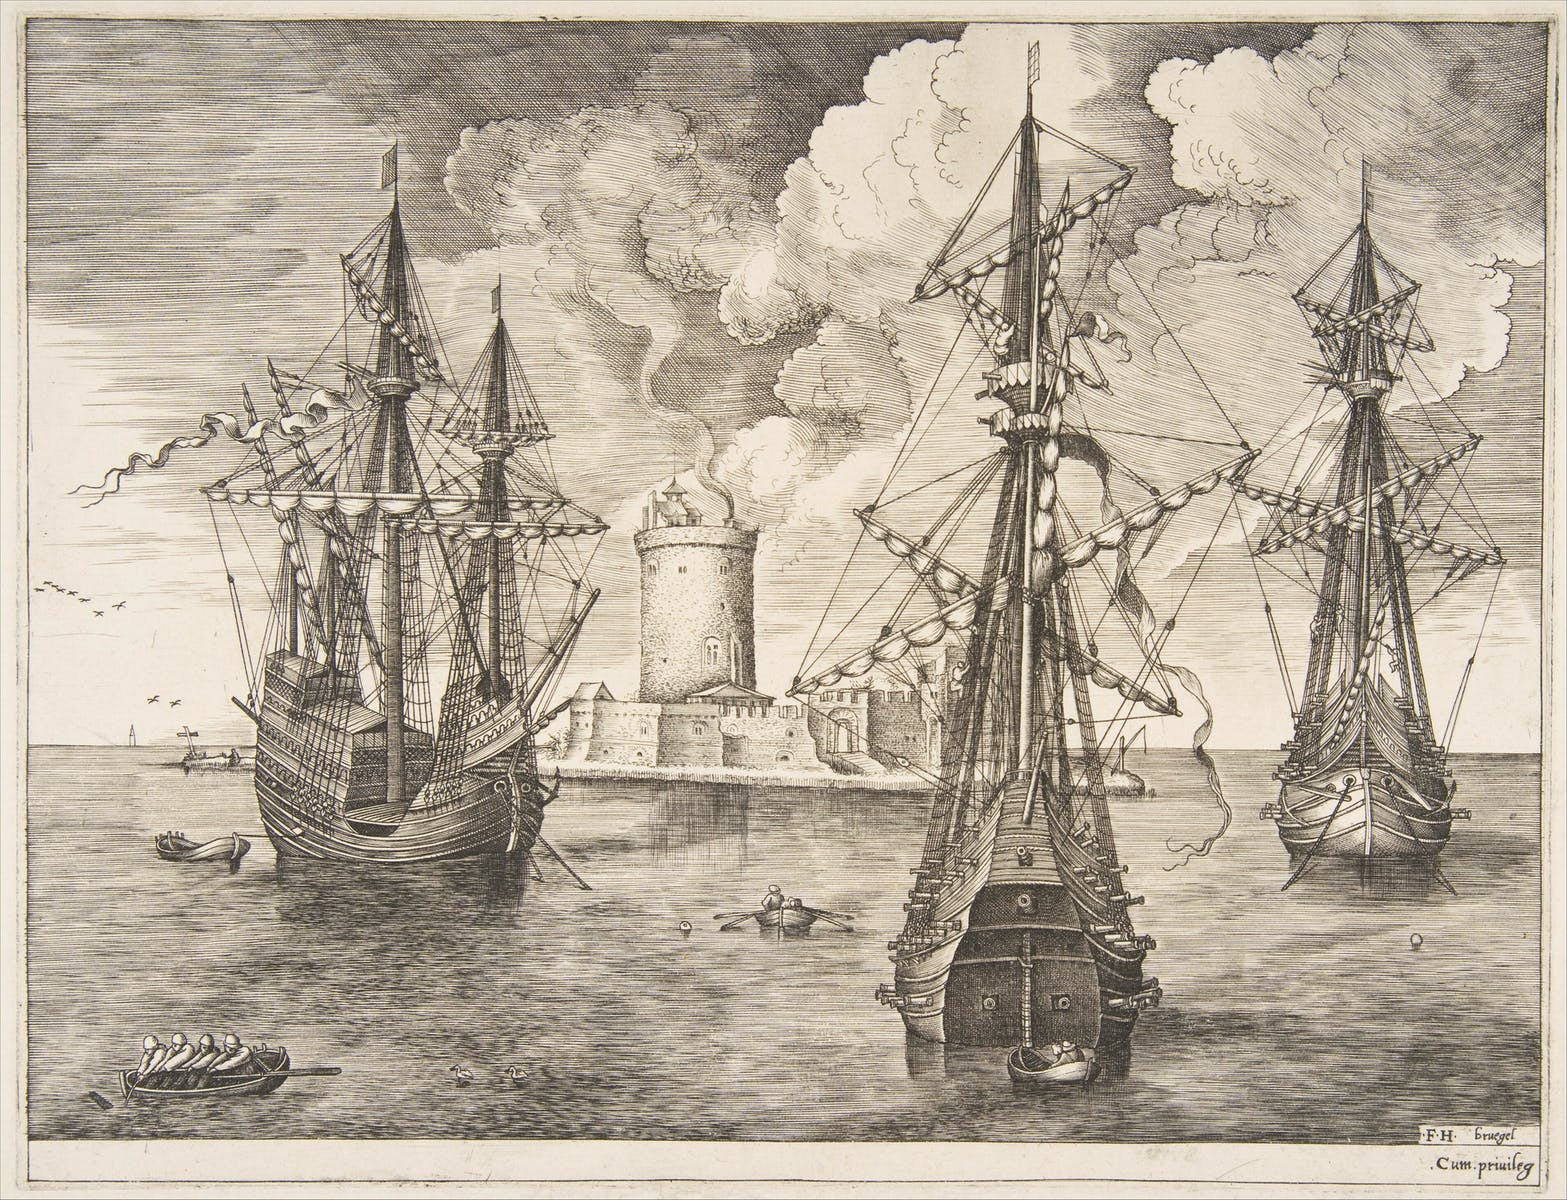 Pieter Bruegel the Elder, One four-masted and two armed three-masted ships anchored off a fortified island with a lighthouse, engraving and etch